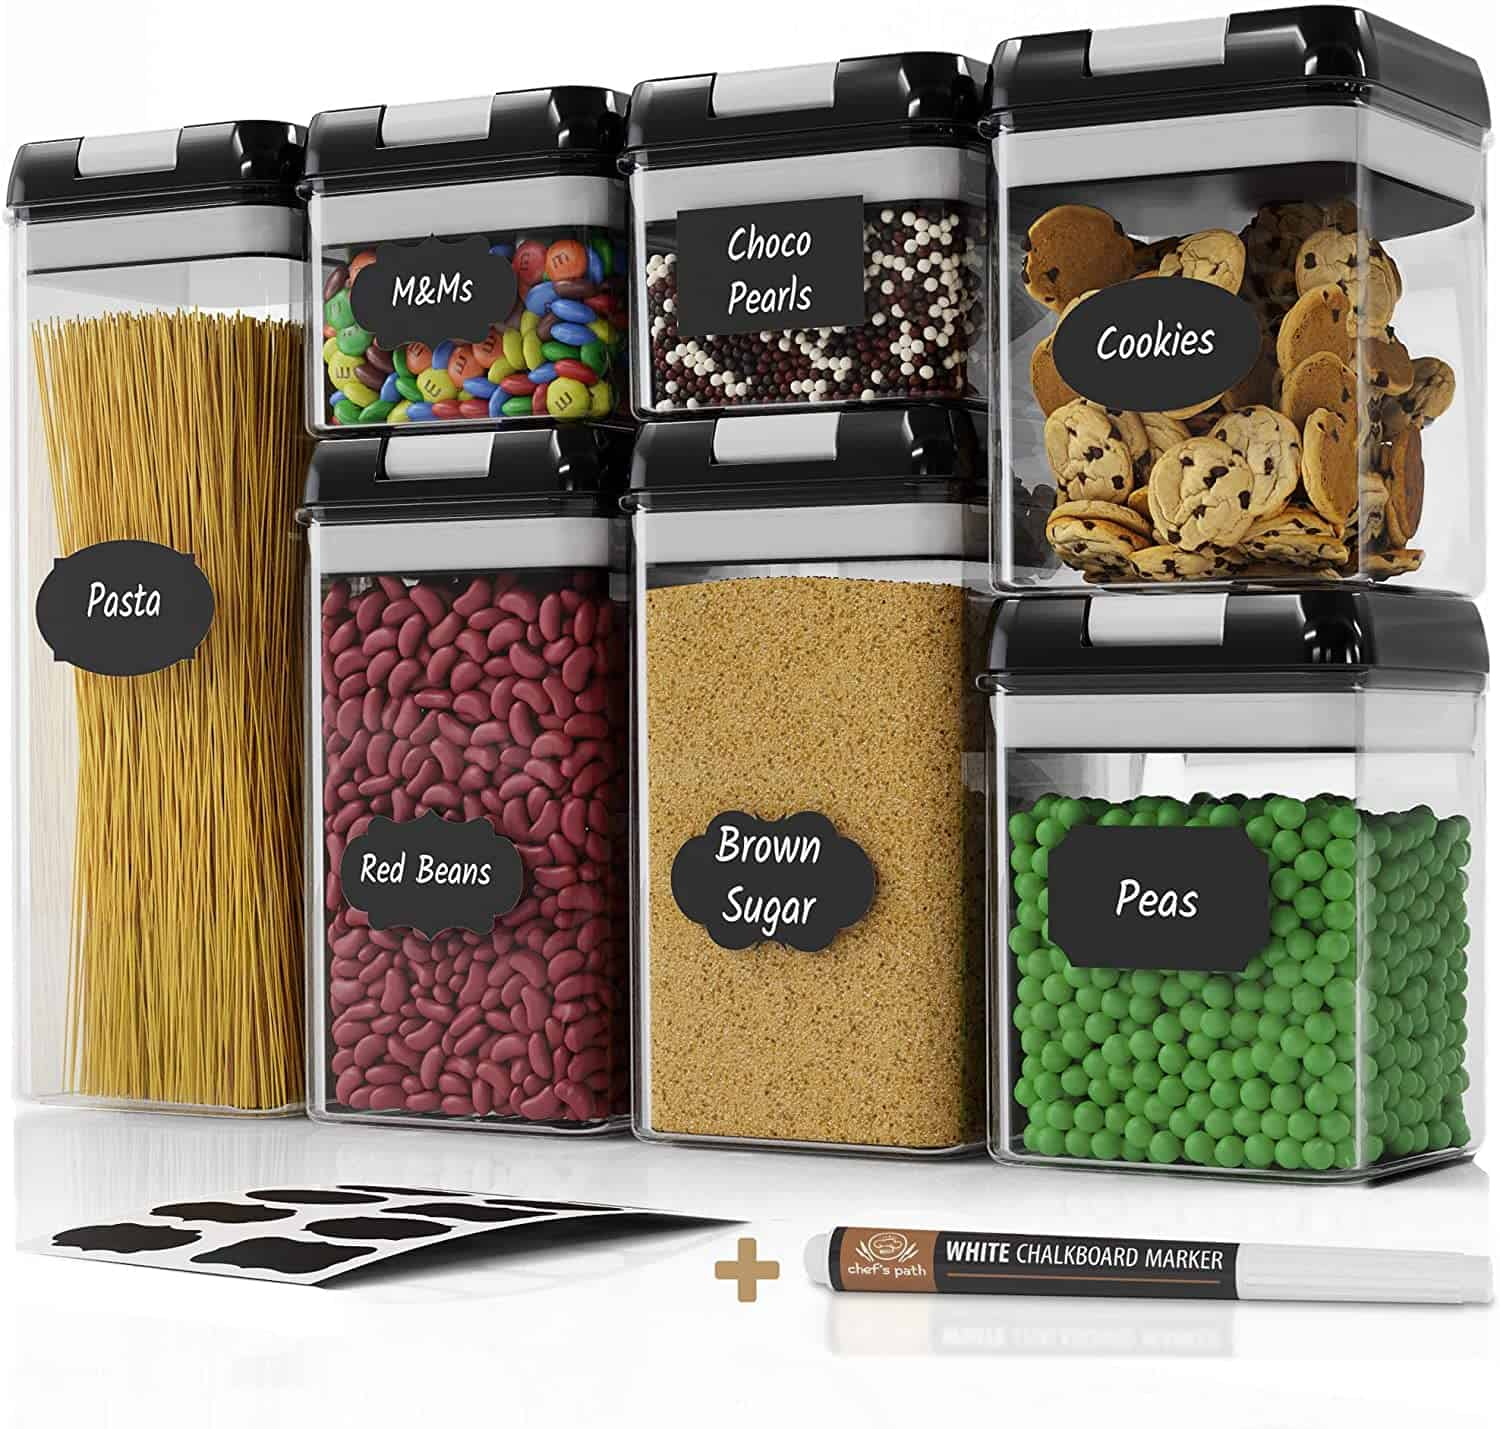 Chef's Path Airtight Food Storage Container Set - 7 PC Set - Labels & Marker - Kitchen & Pantry Organization Containers - BPA-Free - Clear Plastic Canisters for Flour, Cereal with Improved Lids